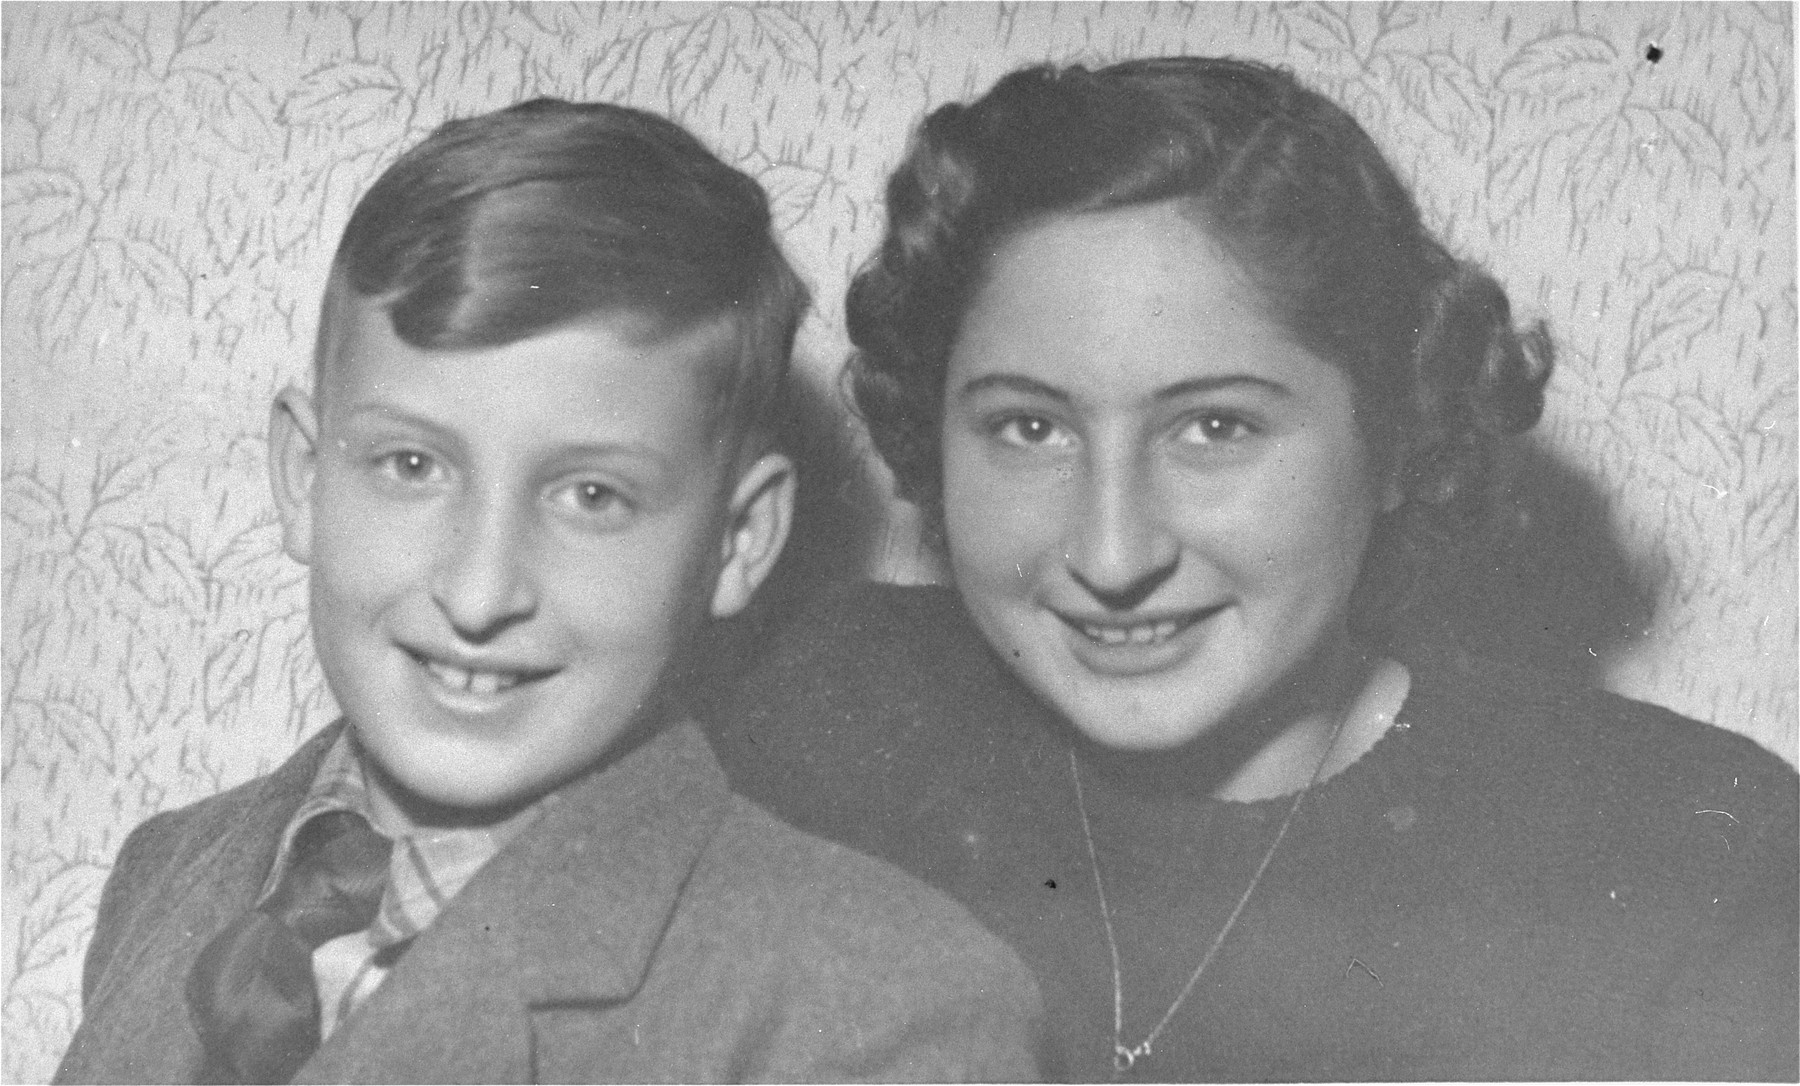 Portrait of the Jewish siblings Gyury and Hedy Brody in Budapest, Hungary.   Gyury and Hedy were saved when their mother Ilmy removed them from the deportation line.  Their mother survived as well, but committed suicide several years after the war.  Their father was killed during the war.